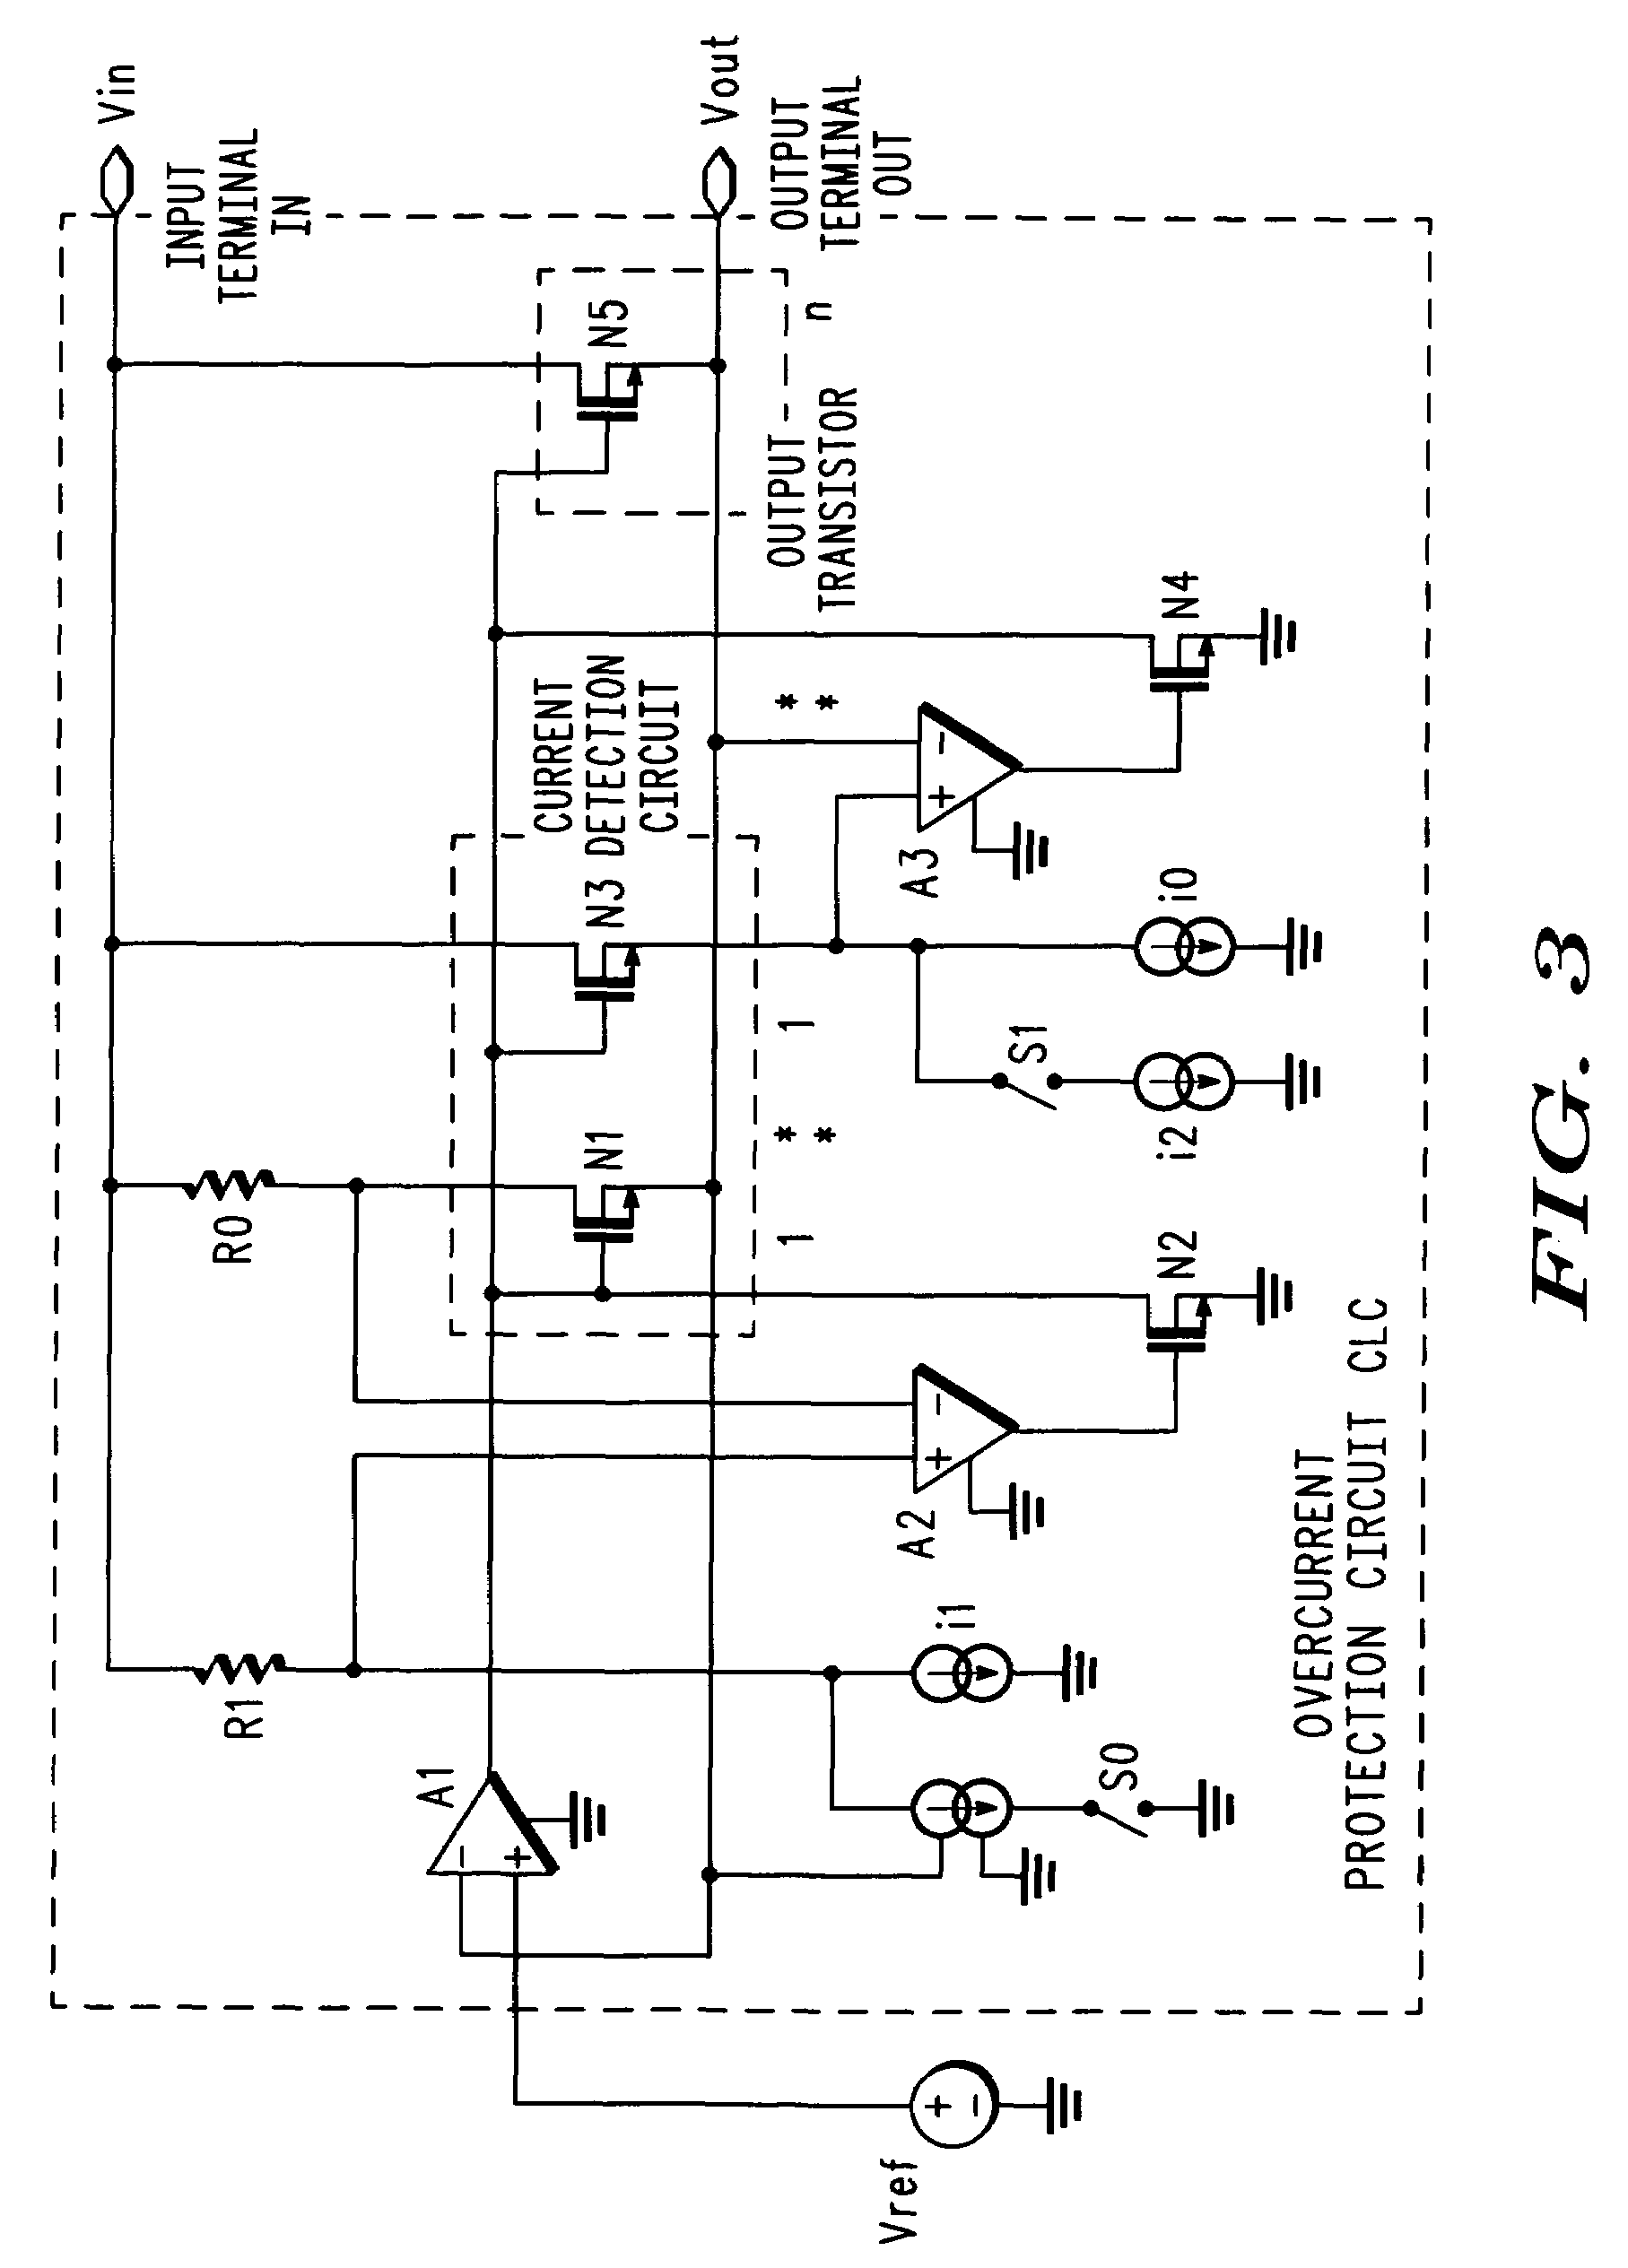 Patent Us7339775 Overcurrent Protection Circuit And Dc Power Foldback Current Limiting Drawing